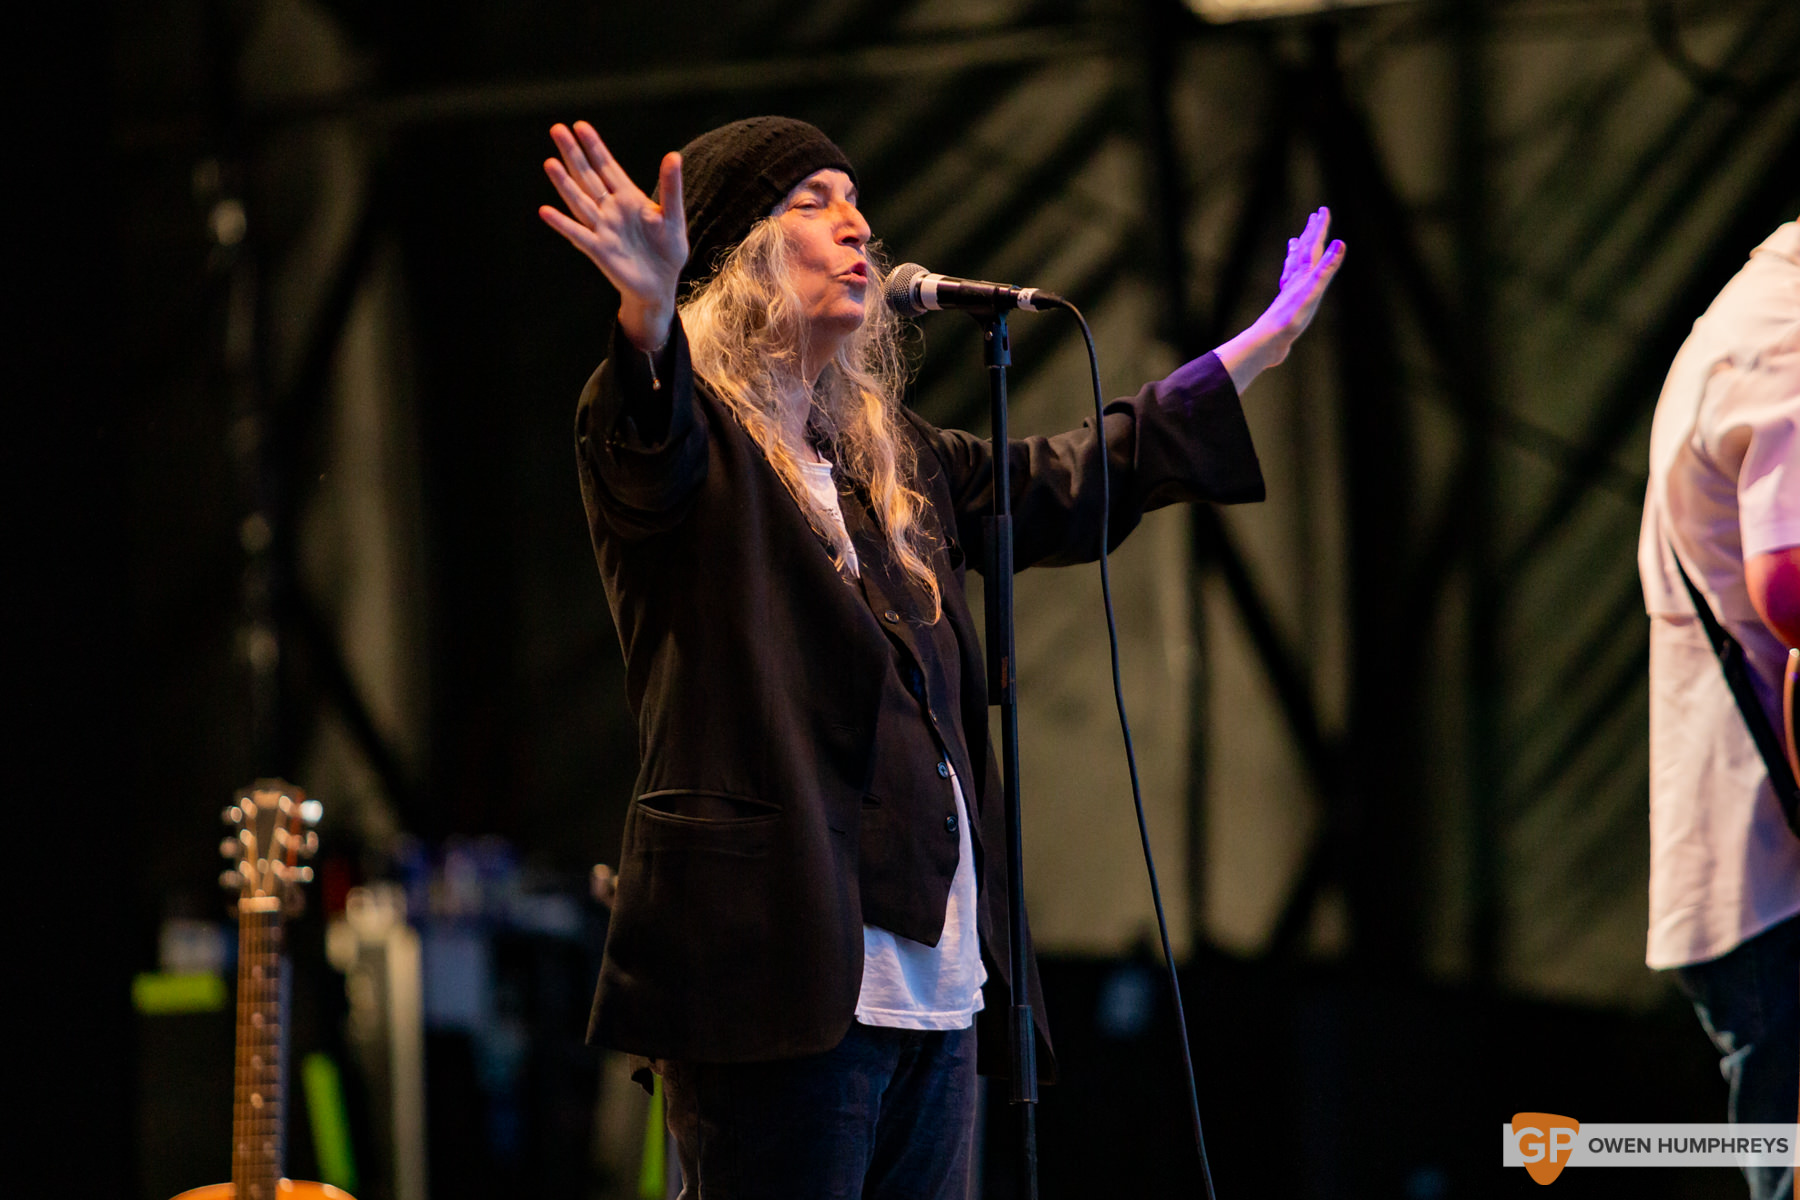 Patti Smith at All Together Now 2019. Photo by Owen Humphreys. www.owen.ie